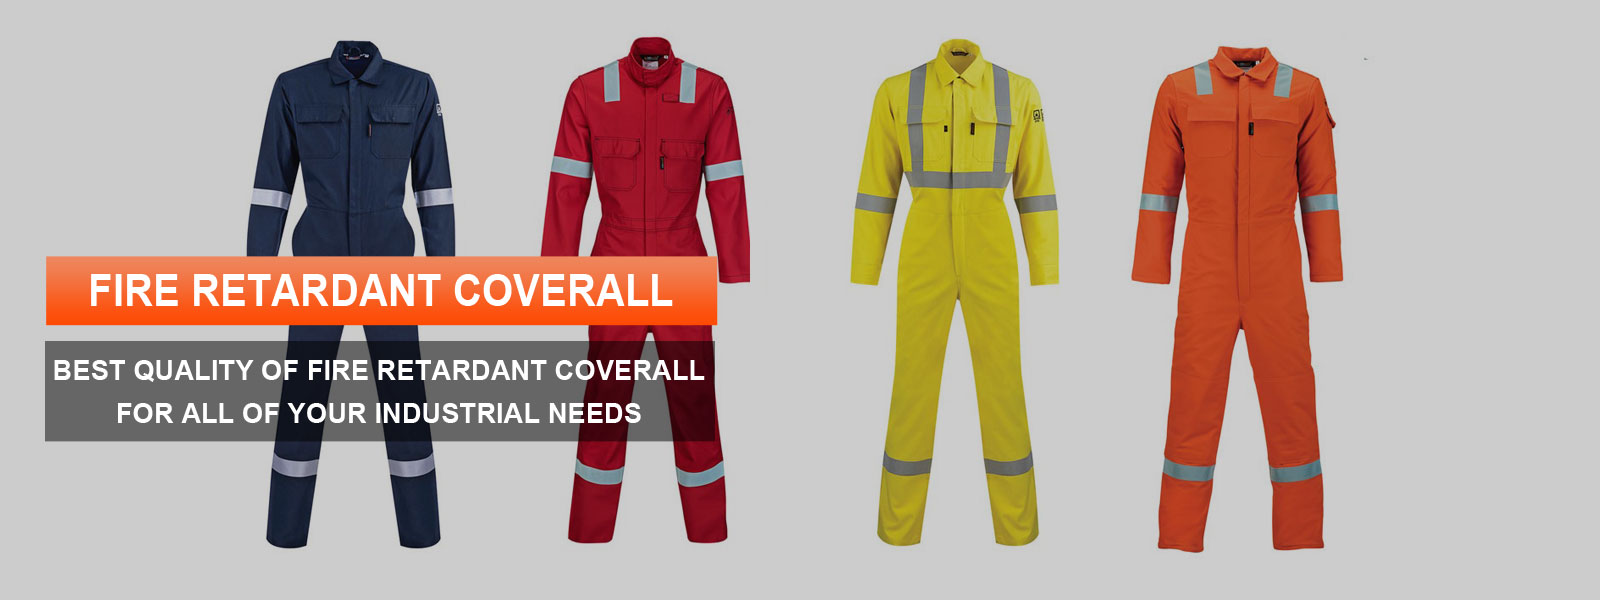 Fire Retardant Coverall Manufacturers in Nagpur